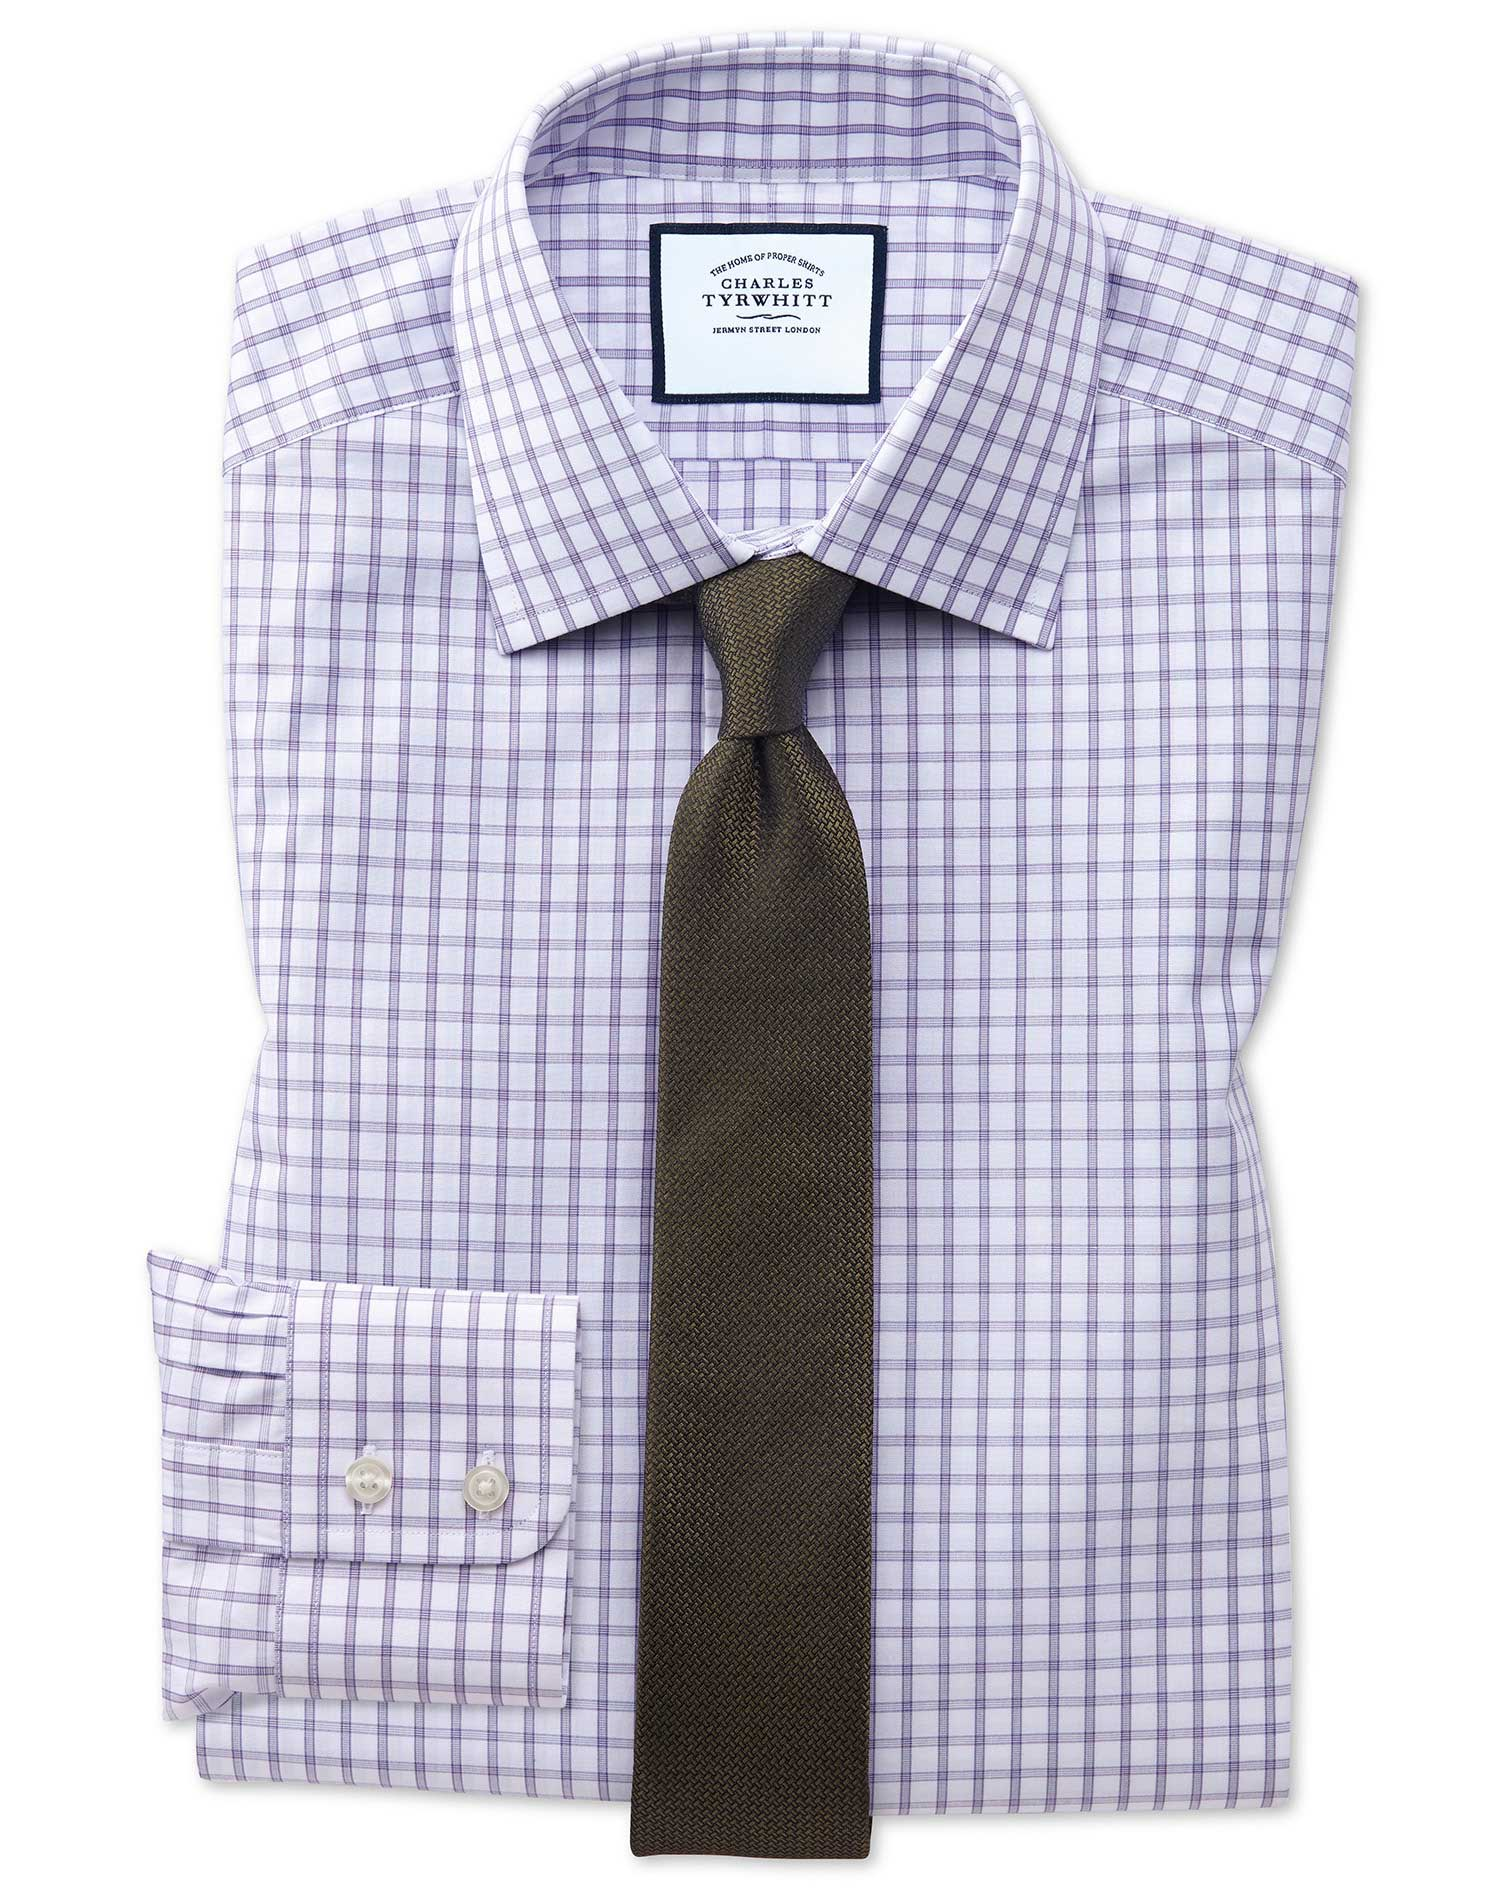 Extra Slim Fit Purple Windowpane Check Cotton Formal Shirt Single Cuff Size 15.5/34 by Charles Tyrwh